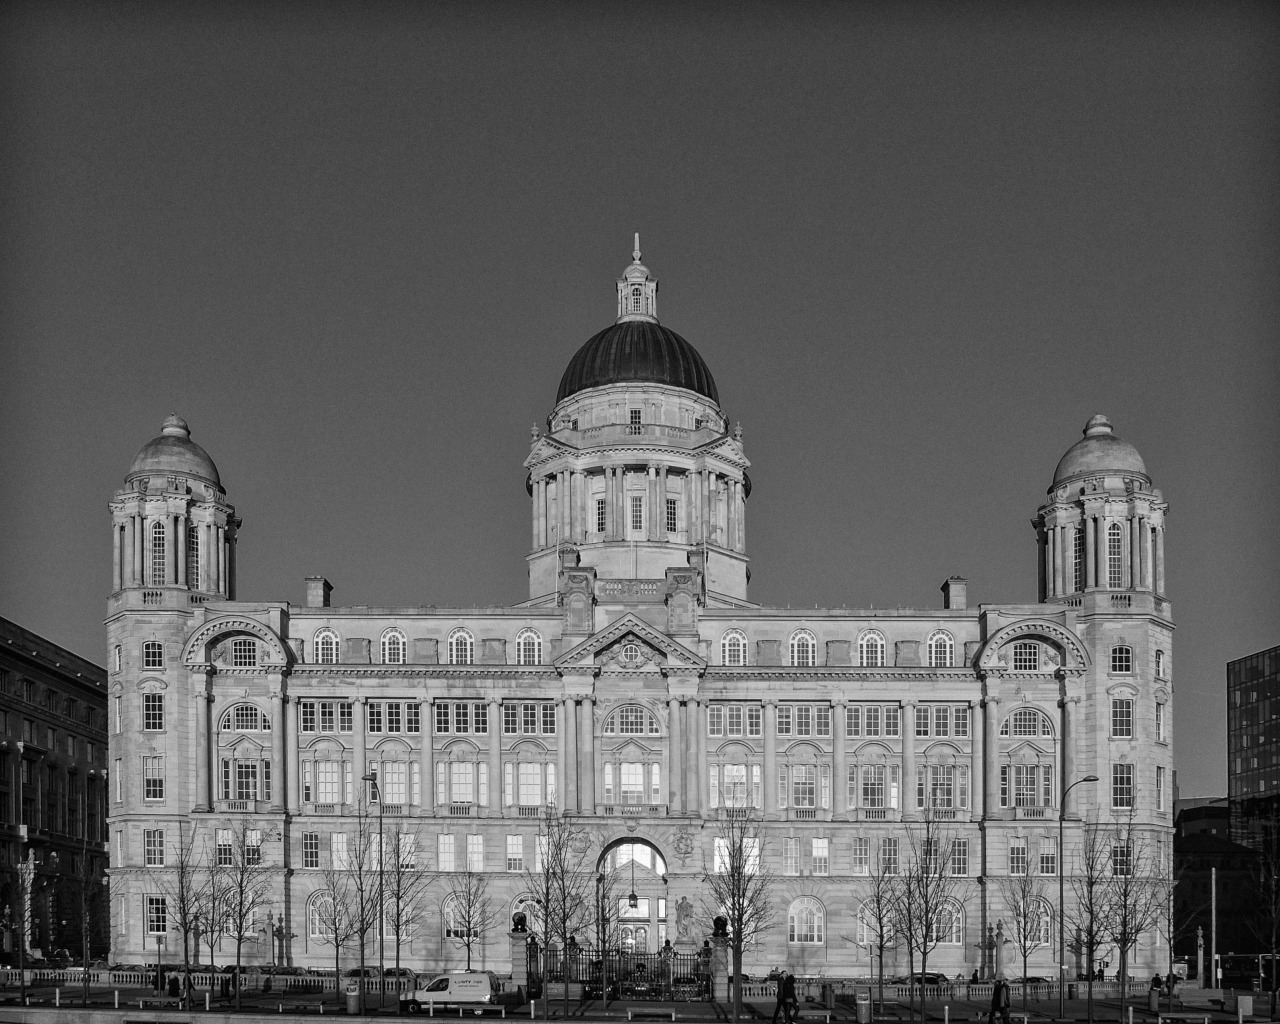 Mersey Docks & Harbour Board Building, Liverpool… Architects: Briggs & Wolstenholm and Hobbs & Thornely - 1903-07 Beautiful evening light gives the building the appearance of being floodlit.